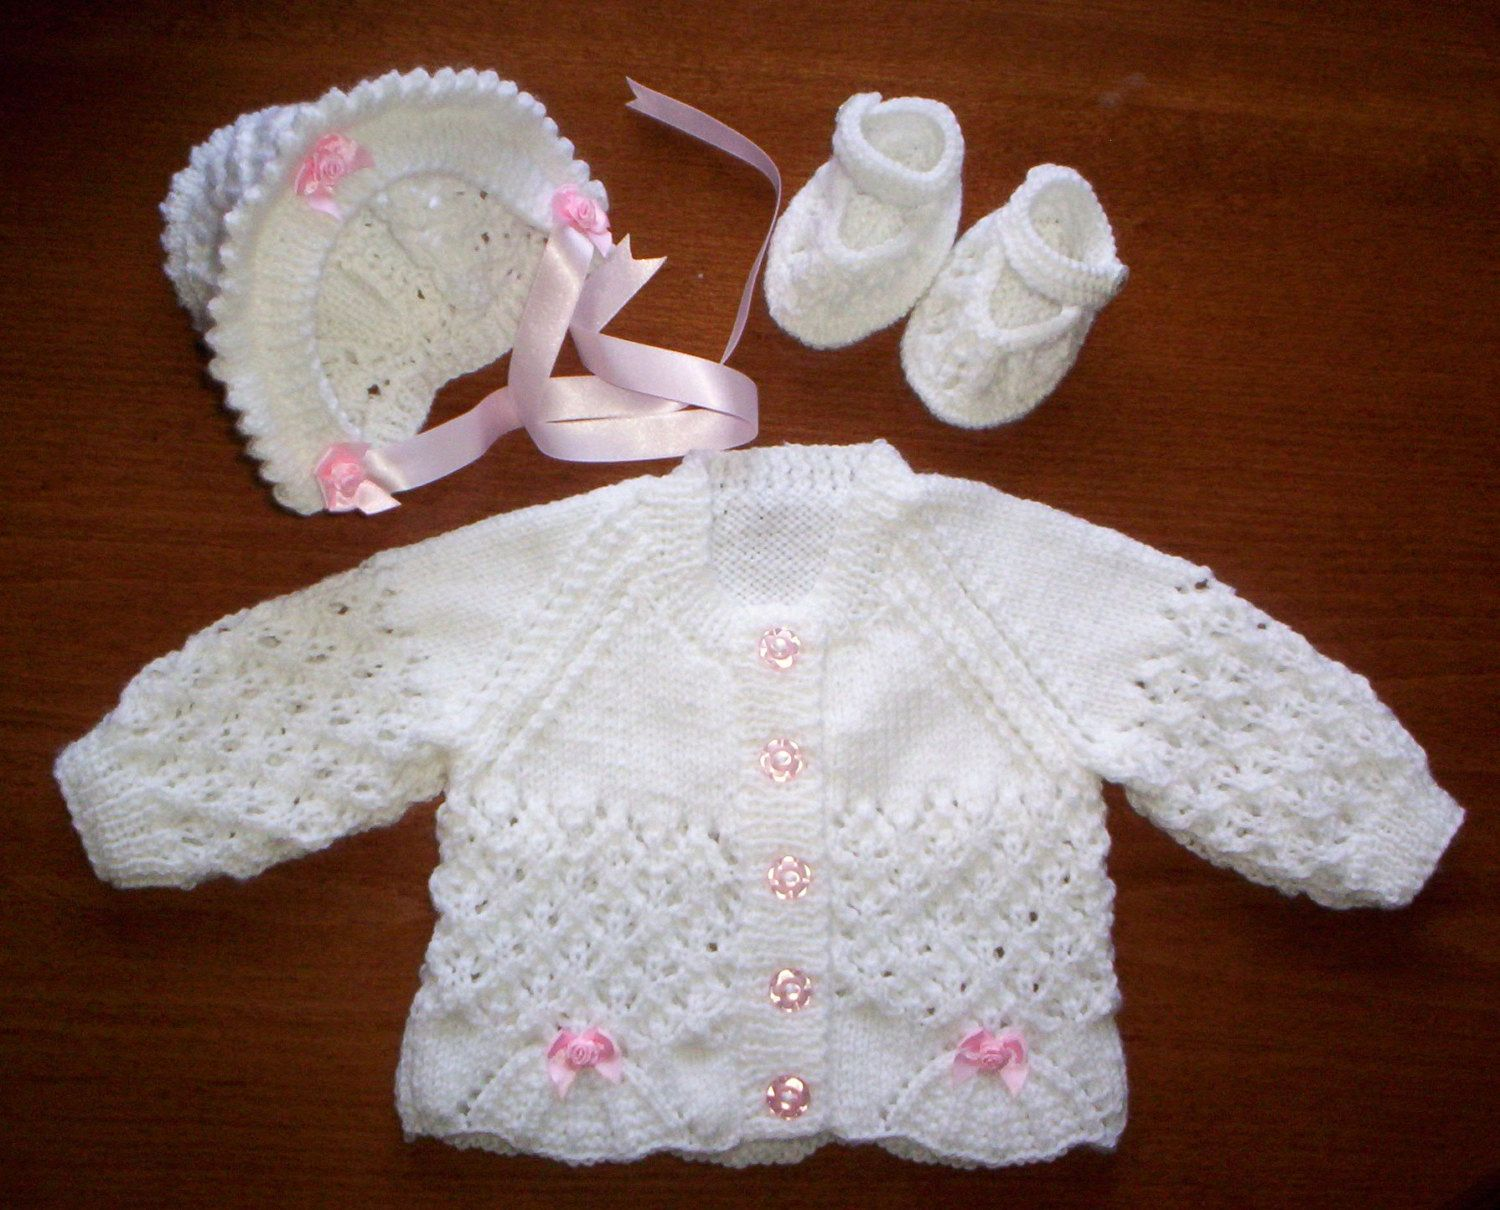 Well-liked Hand Knitted Cardigan/Sweater Set, Newborn Baby girl or 19/21  XA25